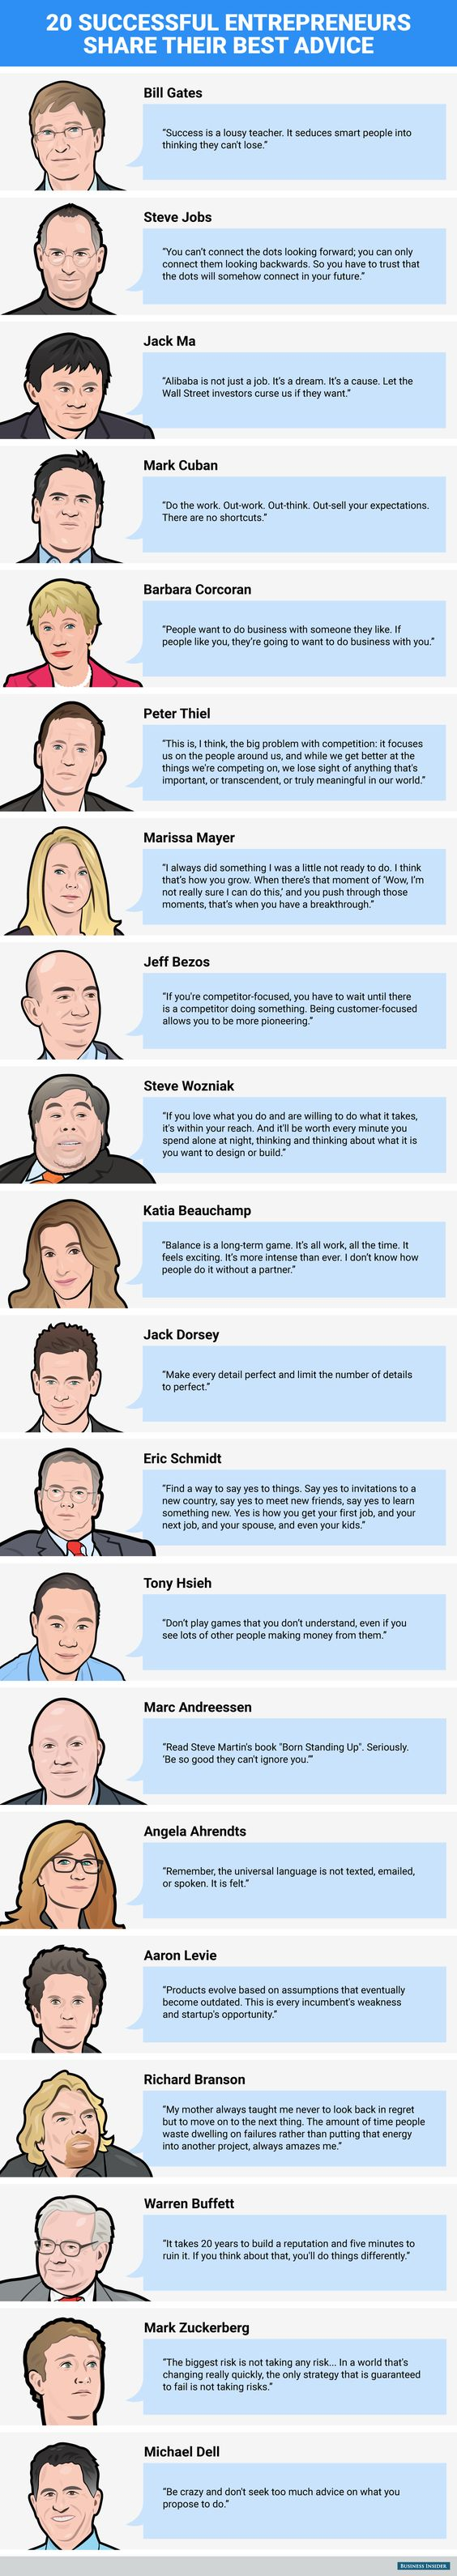 Entrepreneurs share their wisdom